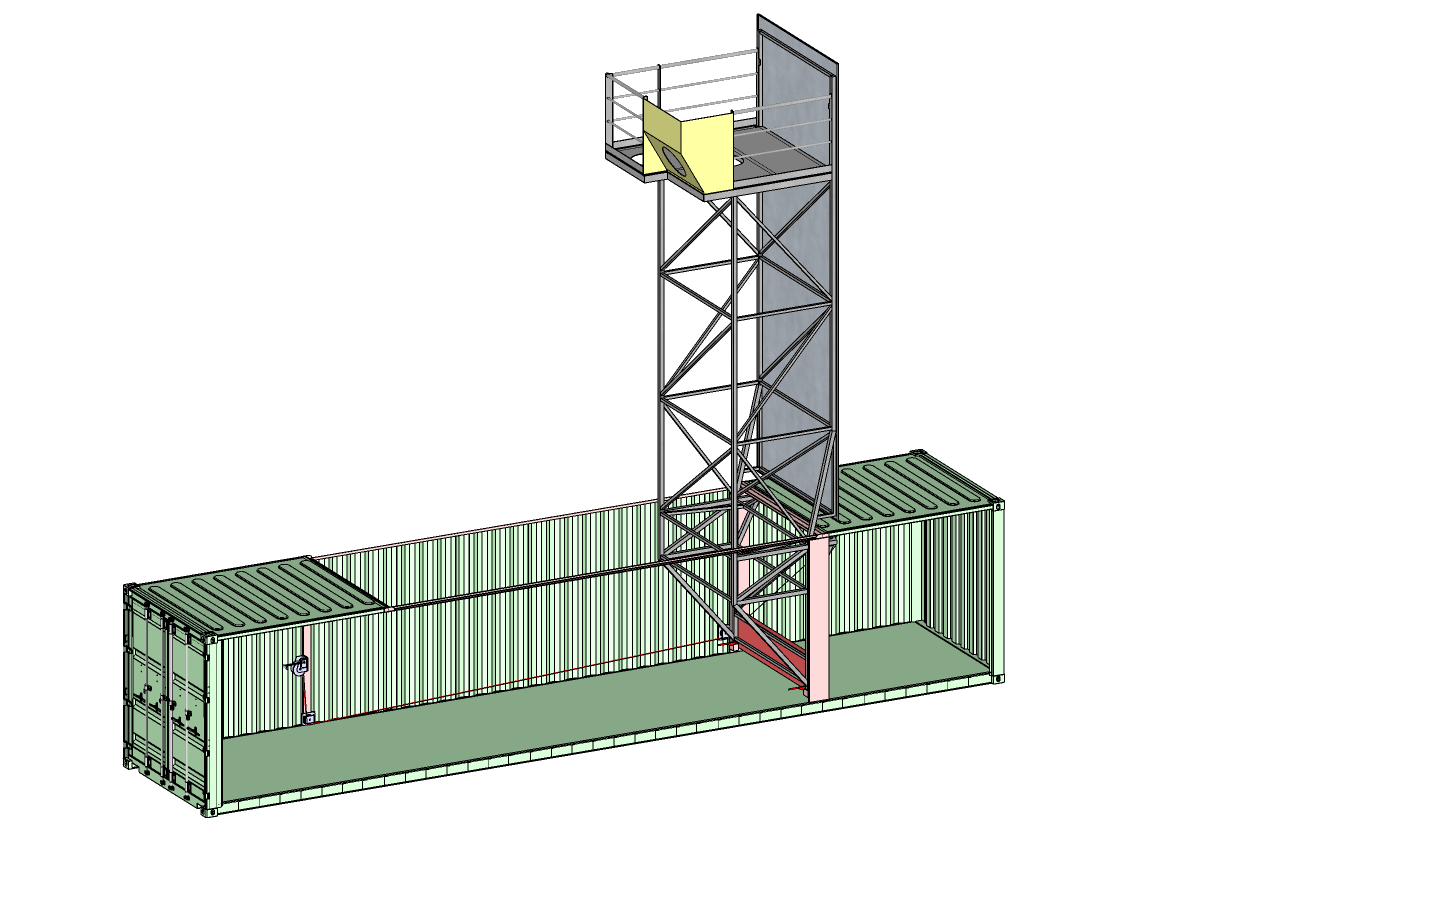 Container tower up